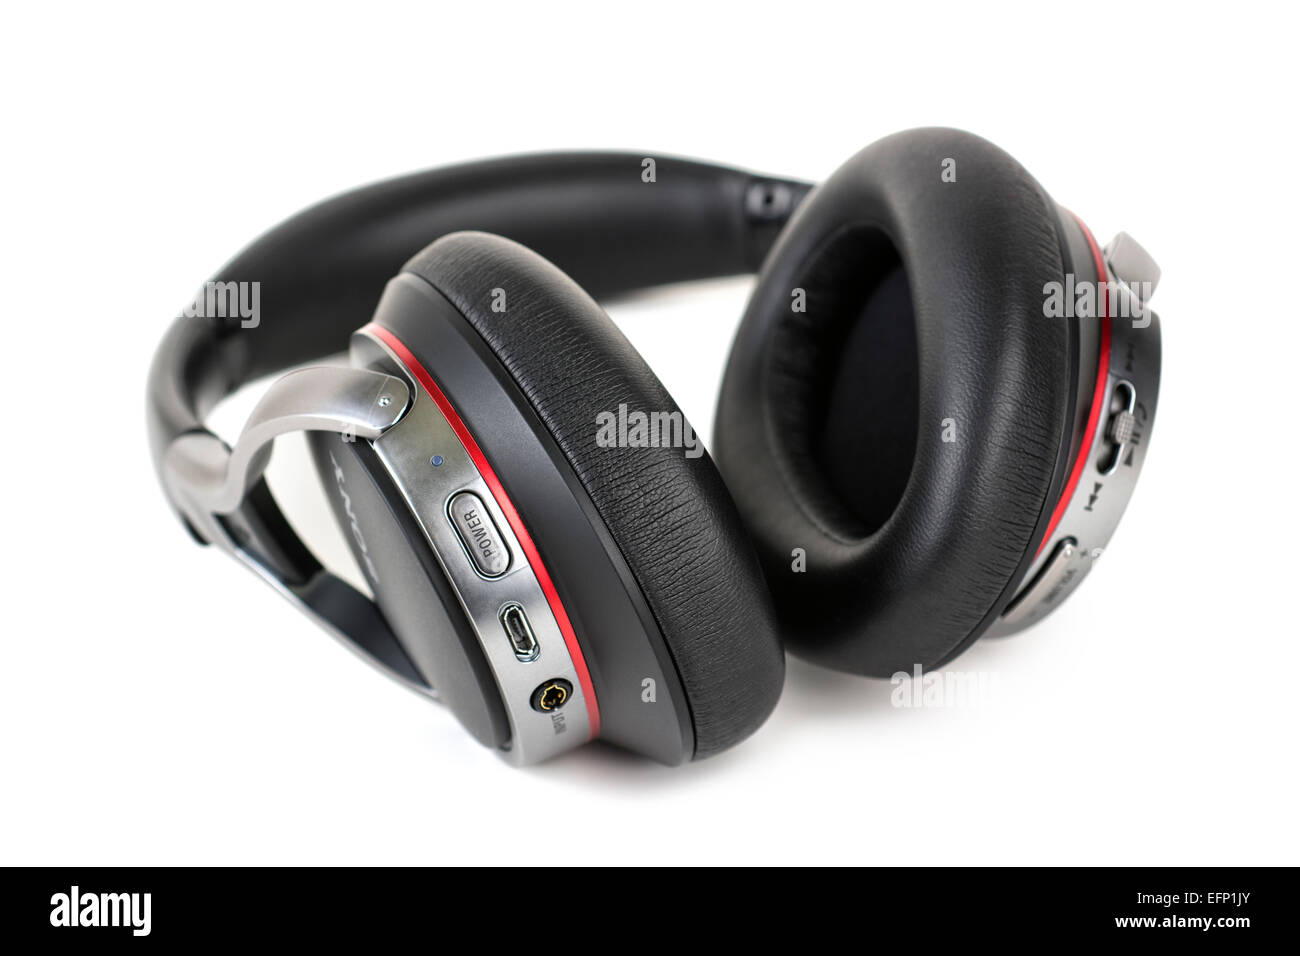 Bluetooth Wireless Headphones, Headset with Microphone for Answering Phone Calls - Stock Image